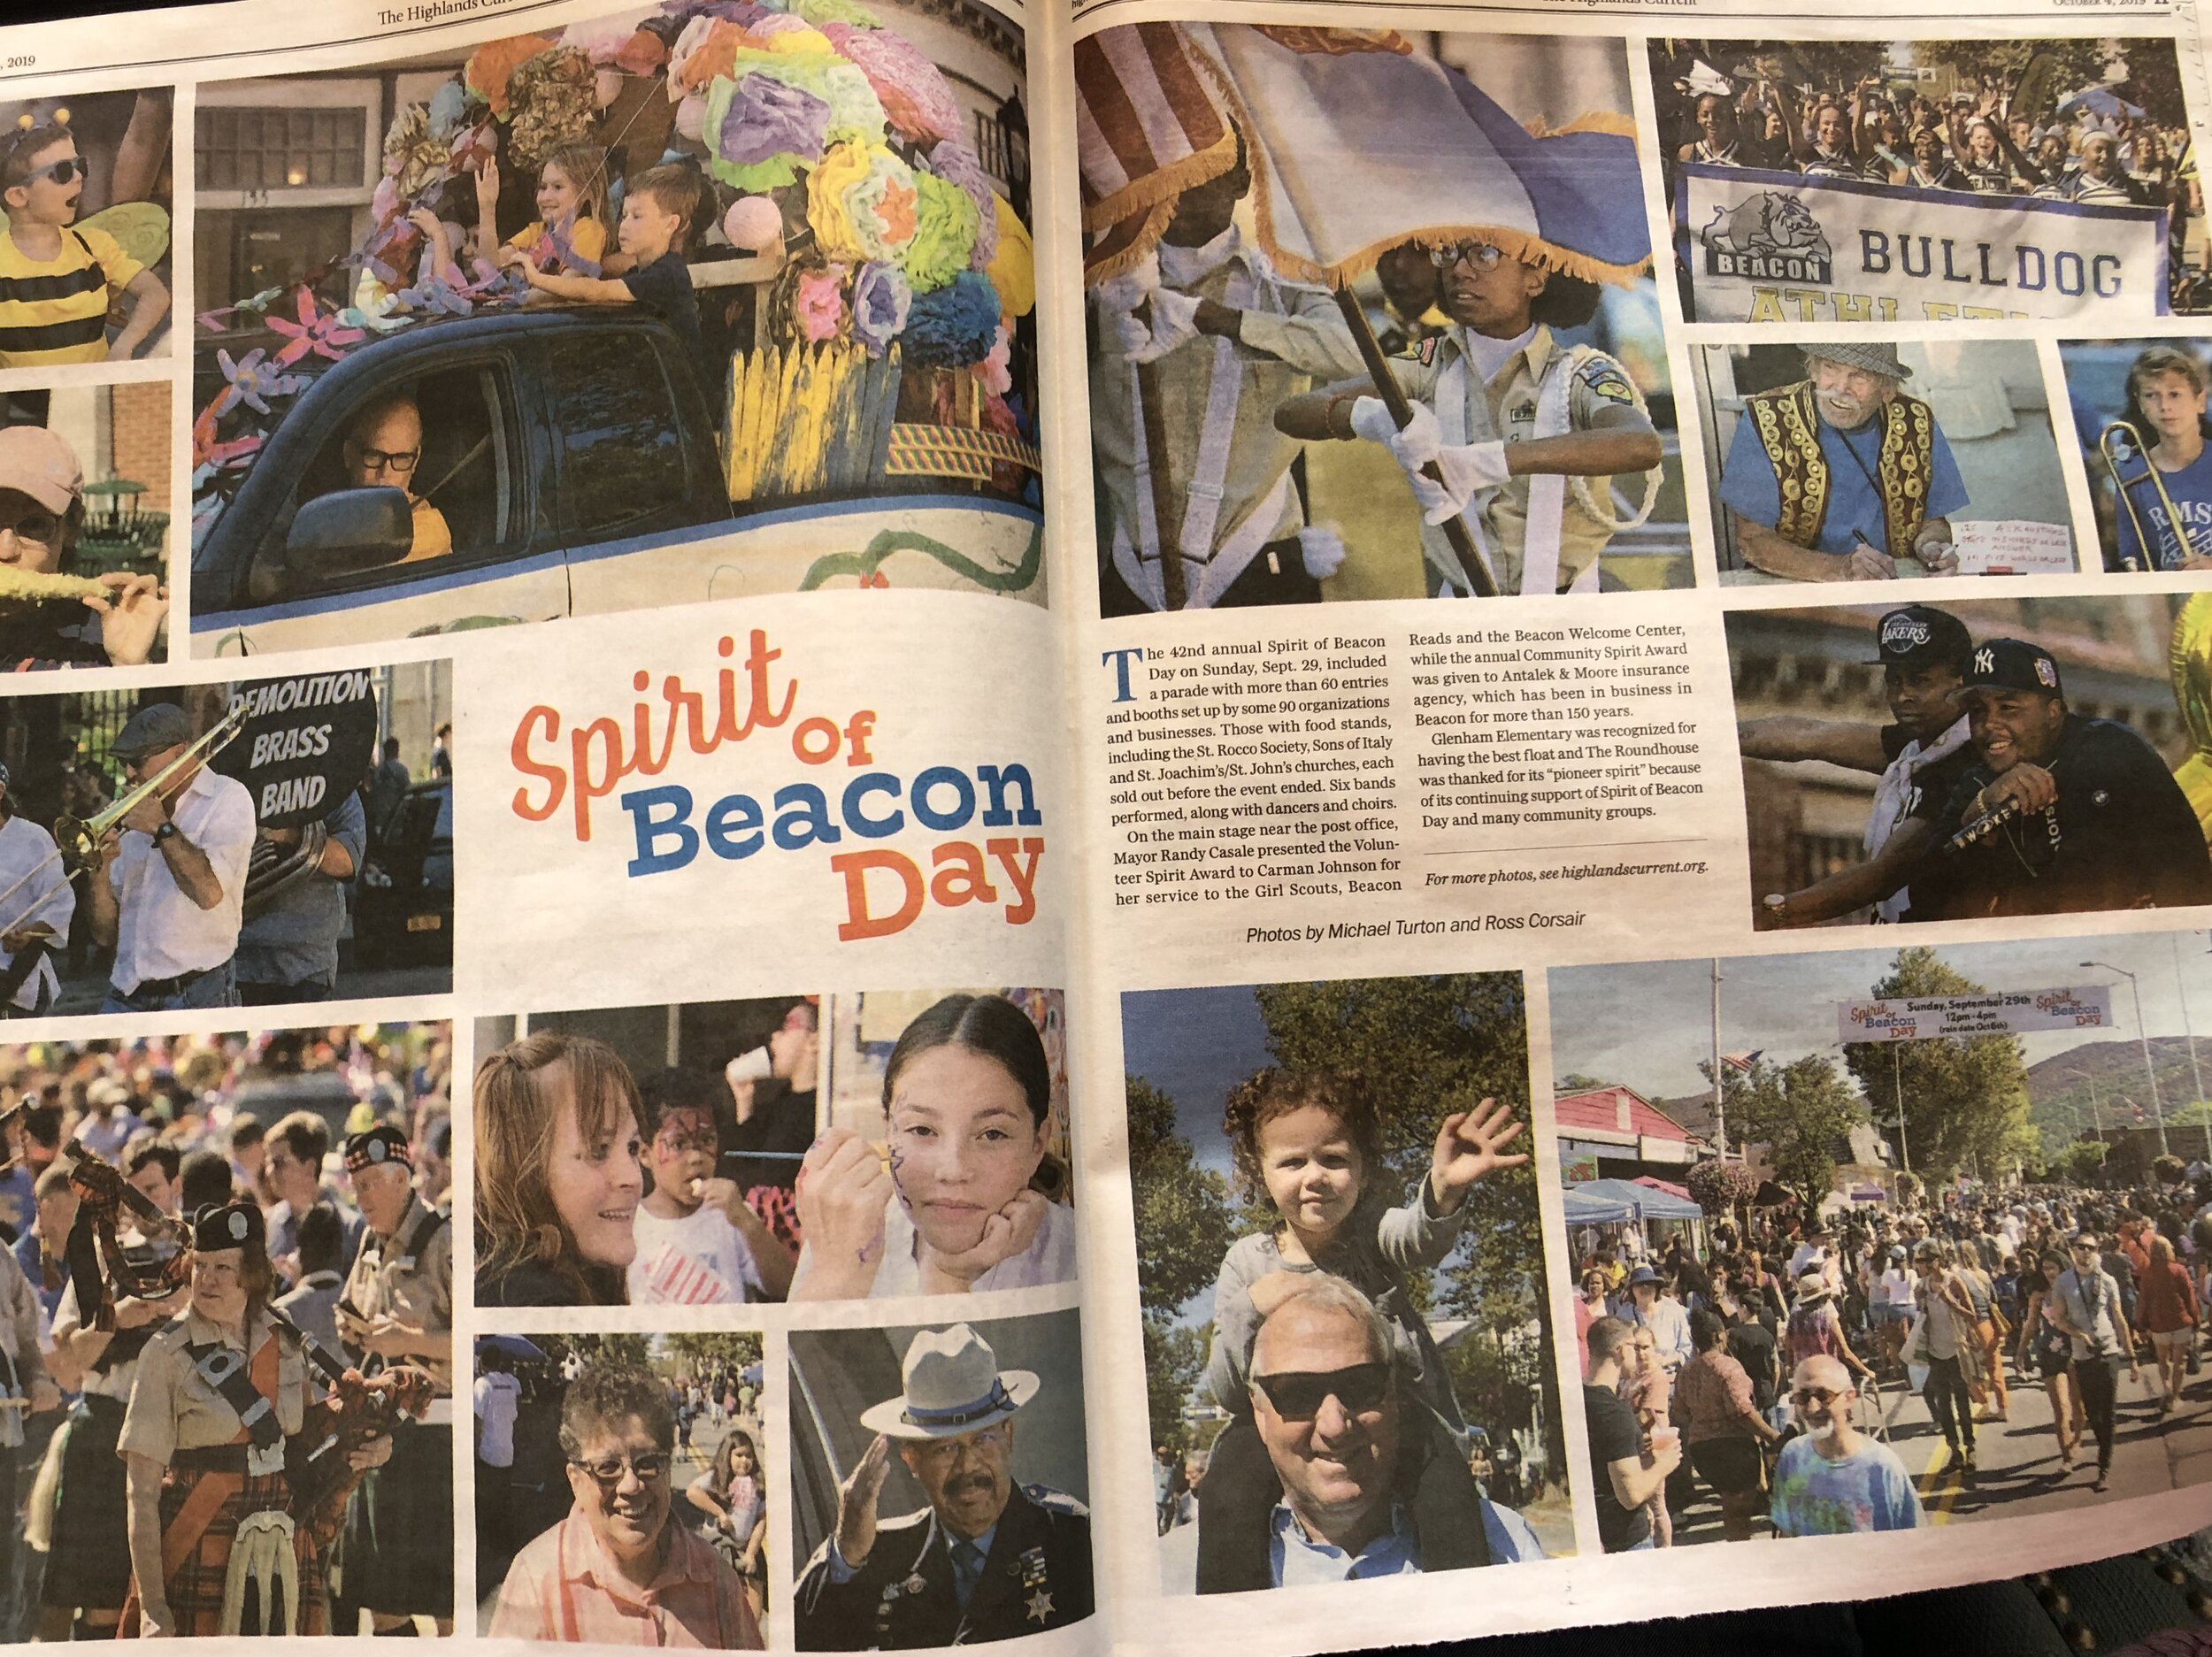 Full spread of the Spirit of Beacon Day 2019 in the Highlands Current.